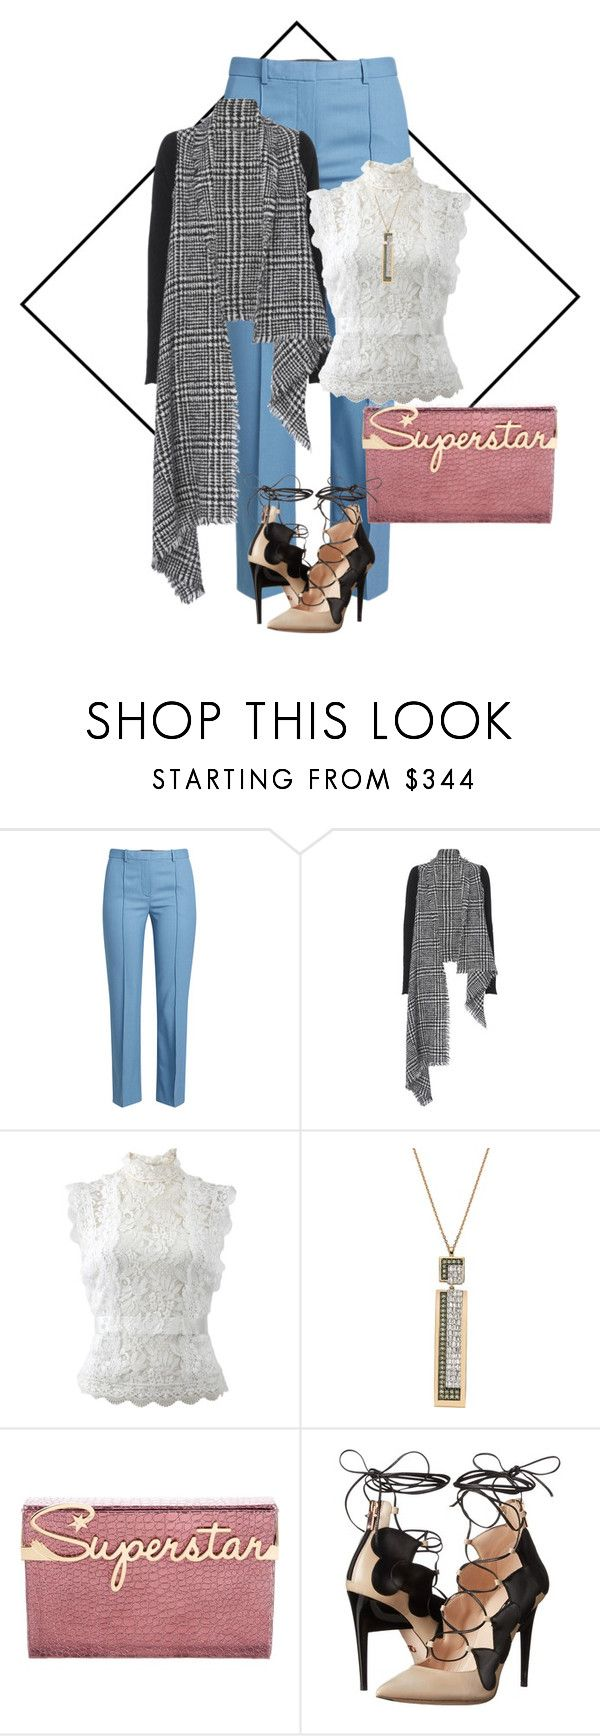 """Untitled #281"" by israa-hosni ❤ liked on Polyvore featuring Theory, Faliero Sarti, Oscar de la Renta, Bee Goddess, Charlotte Olympia and Ruthie Davis"